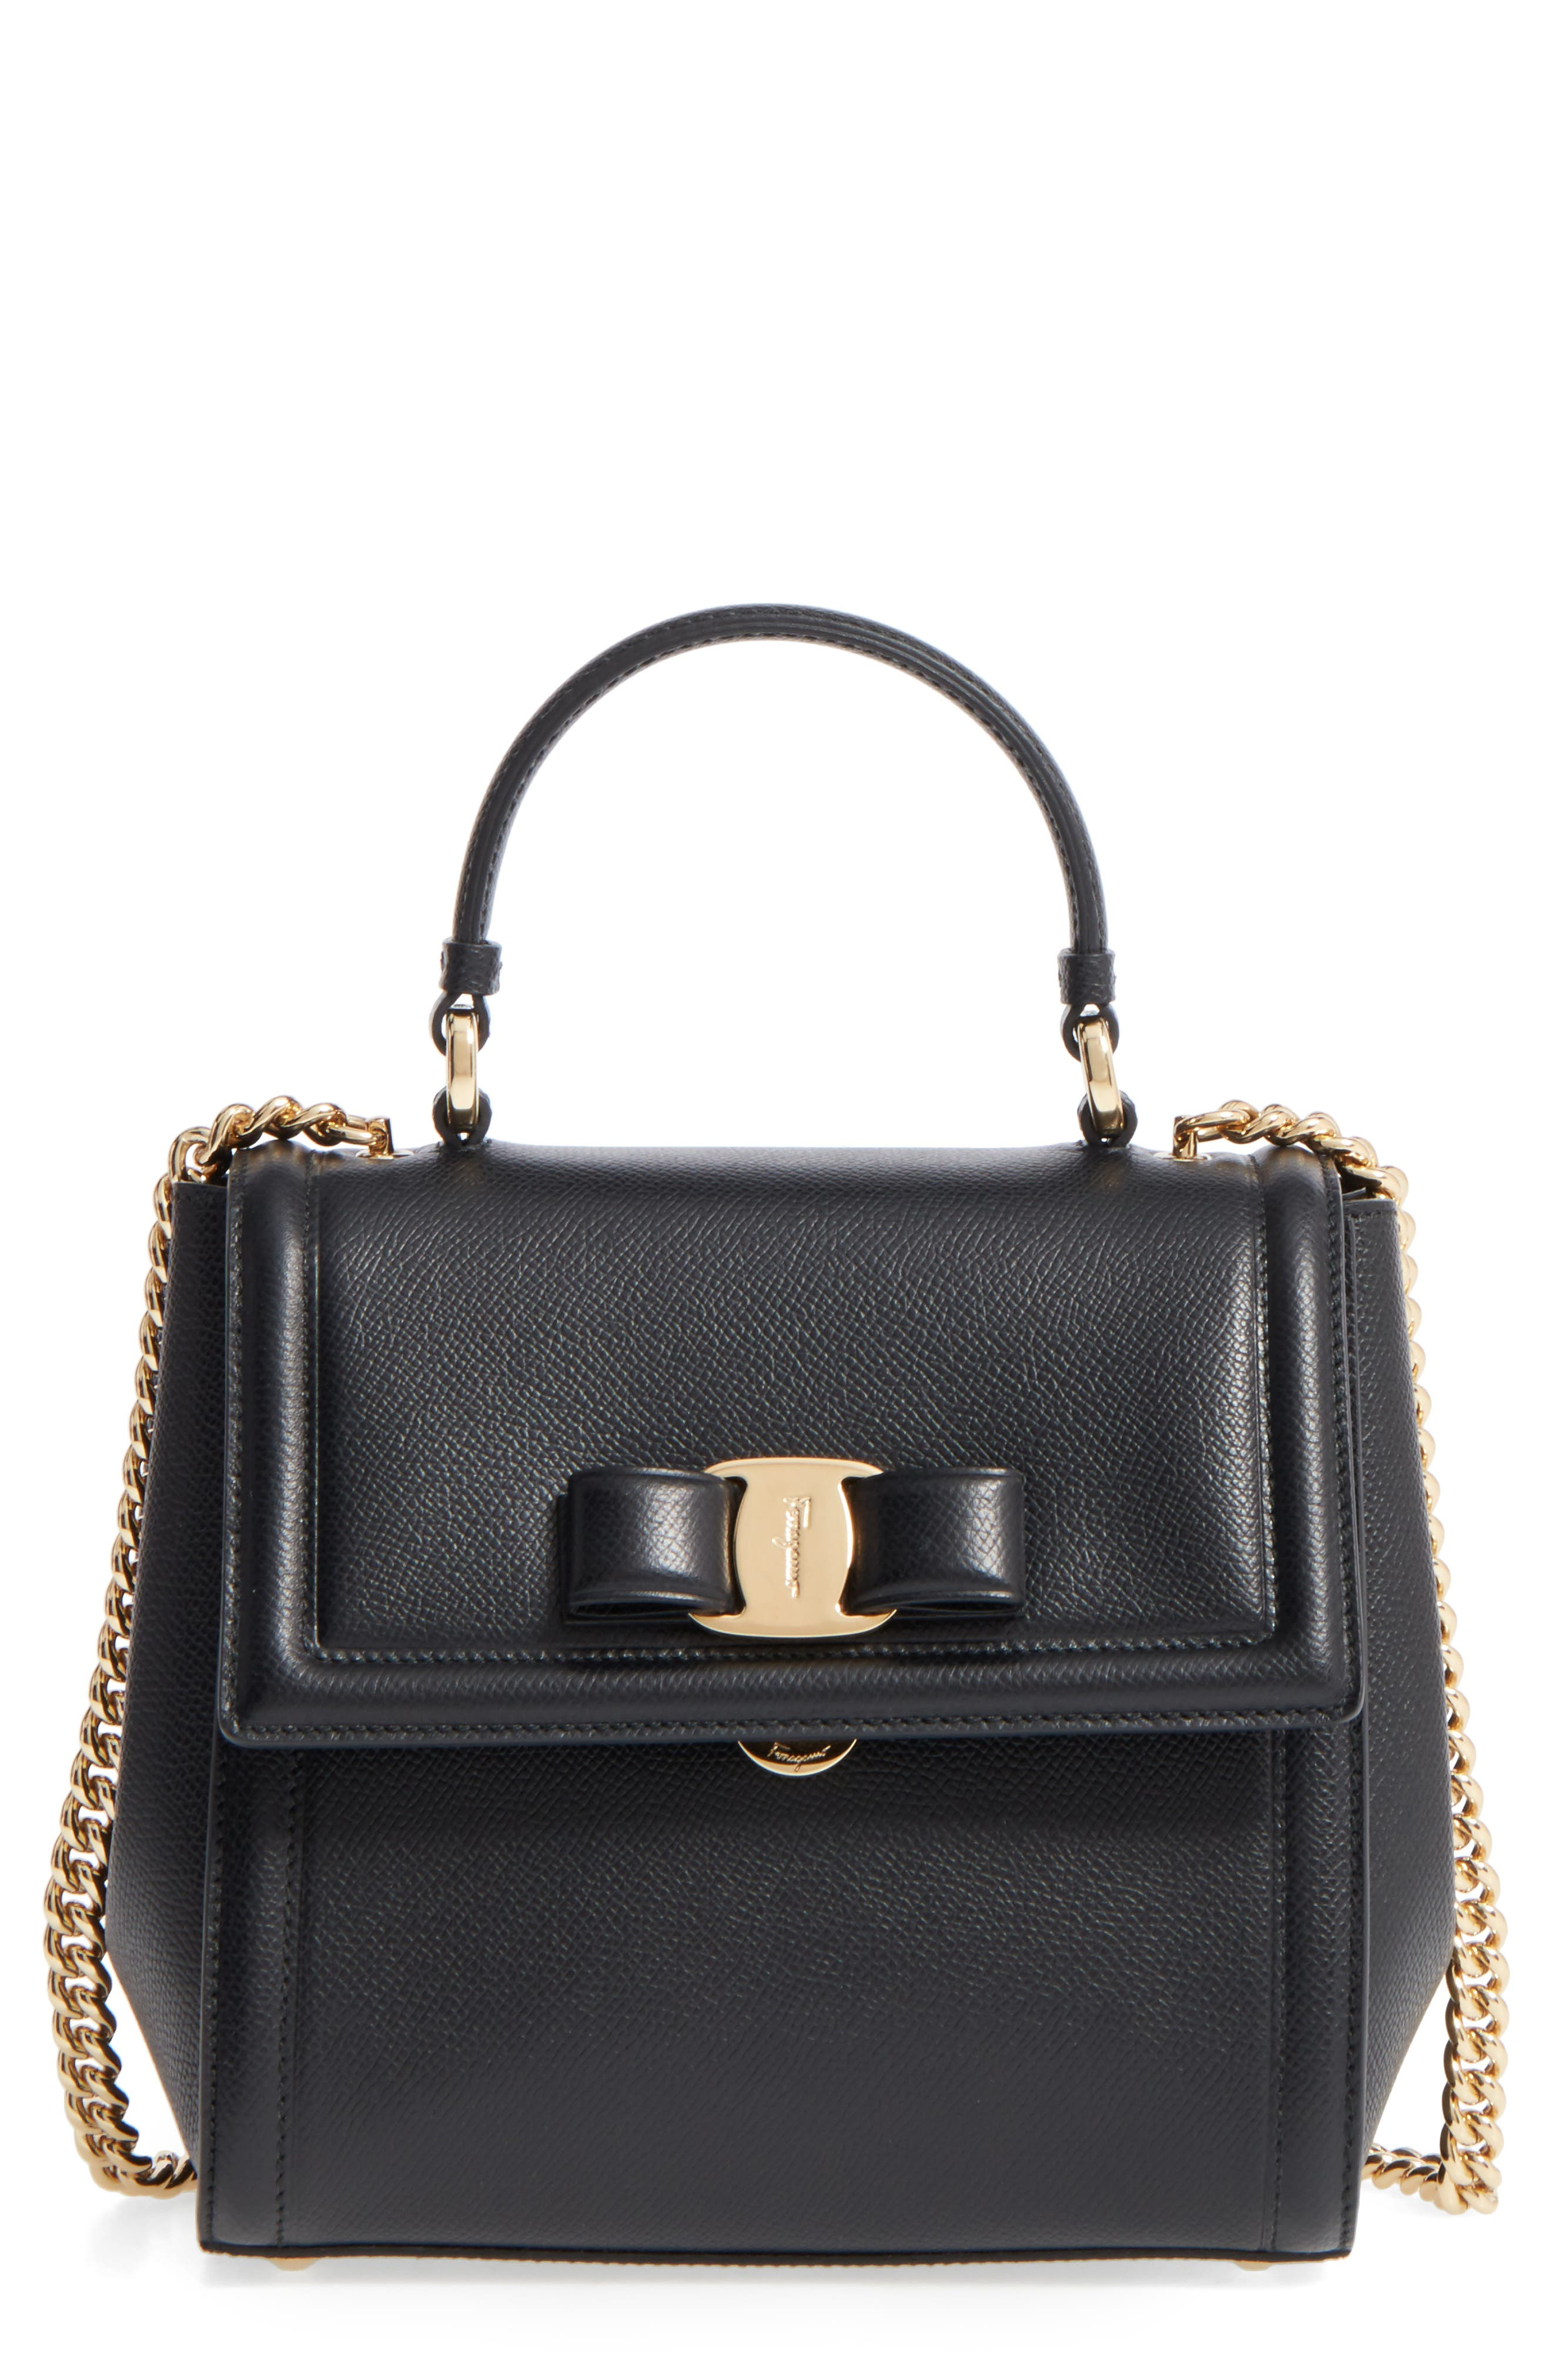 SALVATORE FERRAGAMO,                             Small Carrie Leather Bow Satchel,                             Main thumbnail 1, color,                             NERO